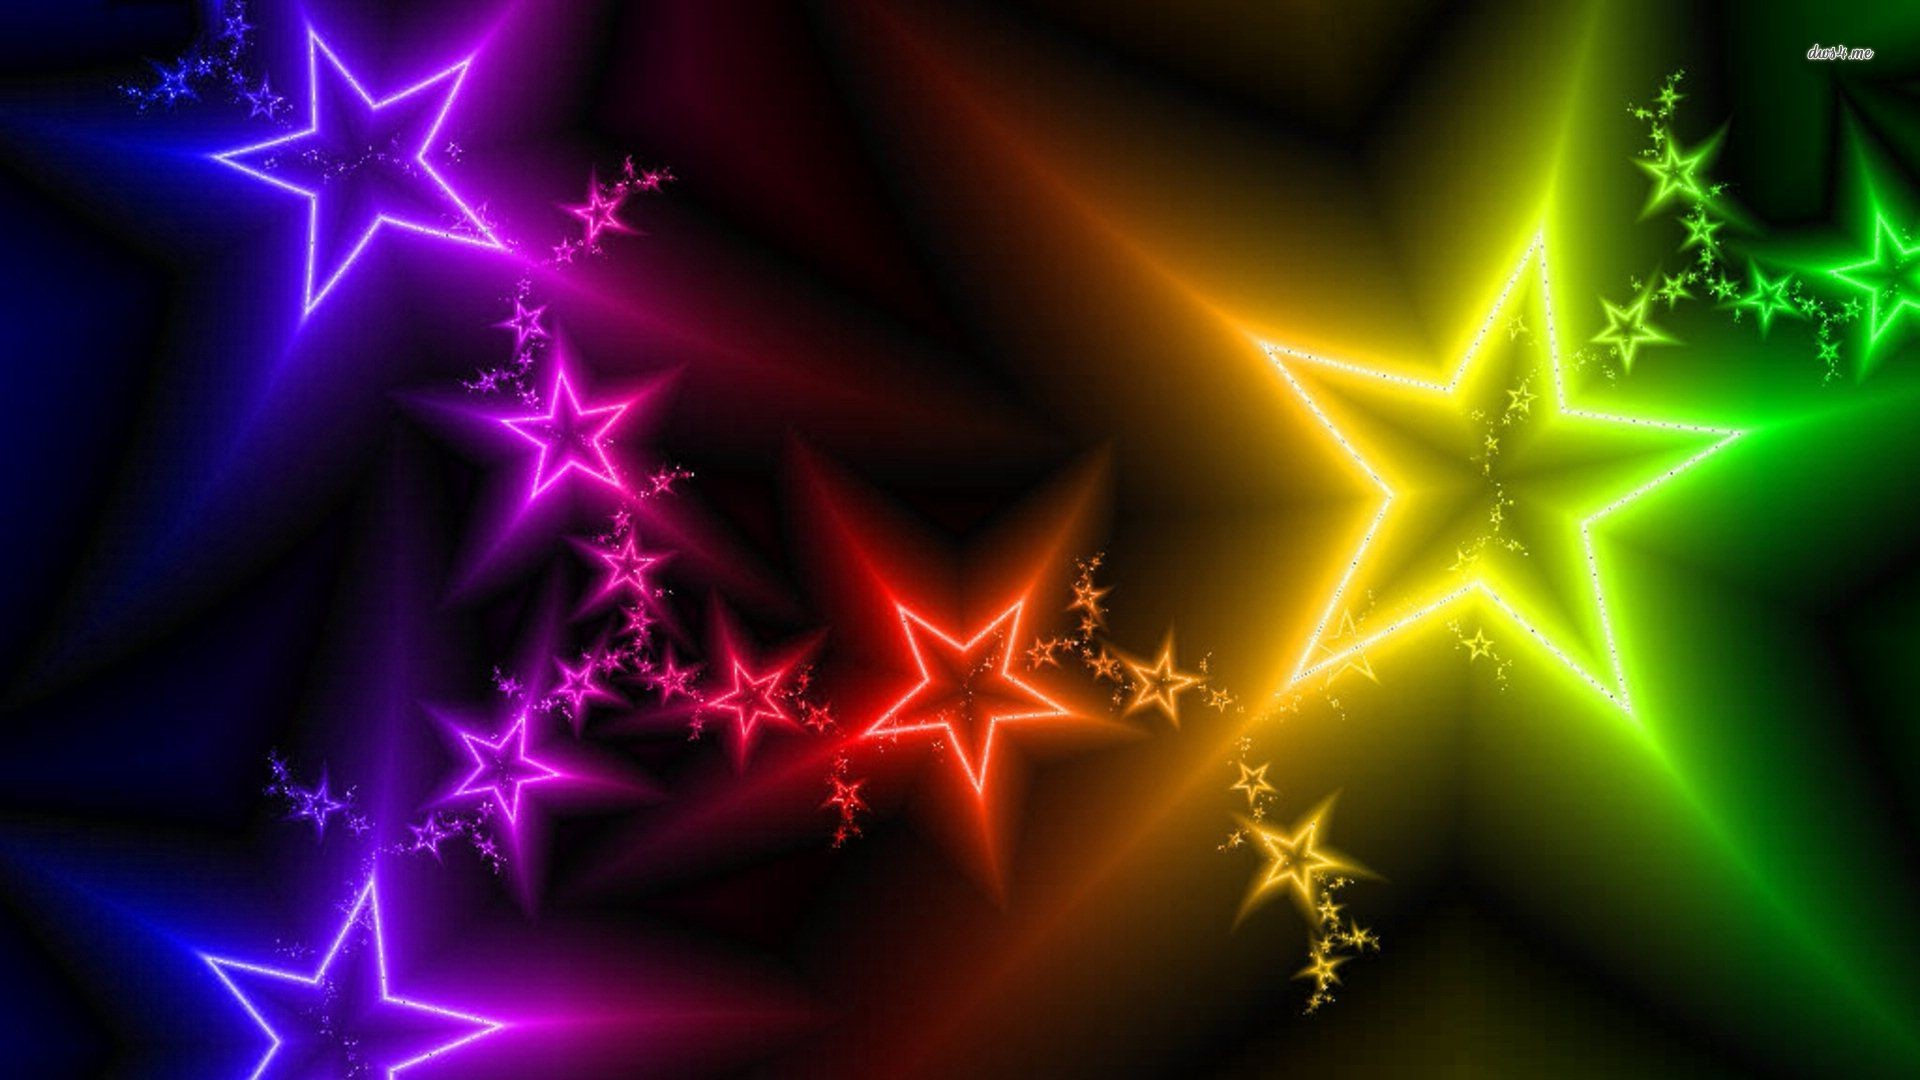 1920x1080 colorful wallpaper: Colorful Star Wallpaper (61+ Images